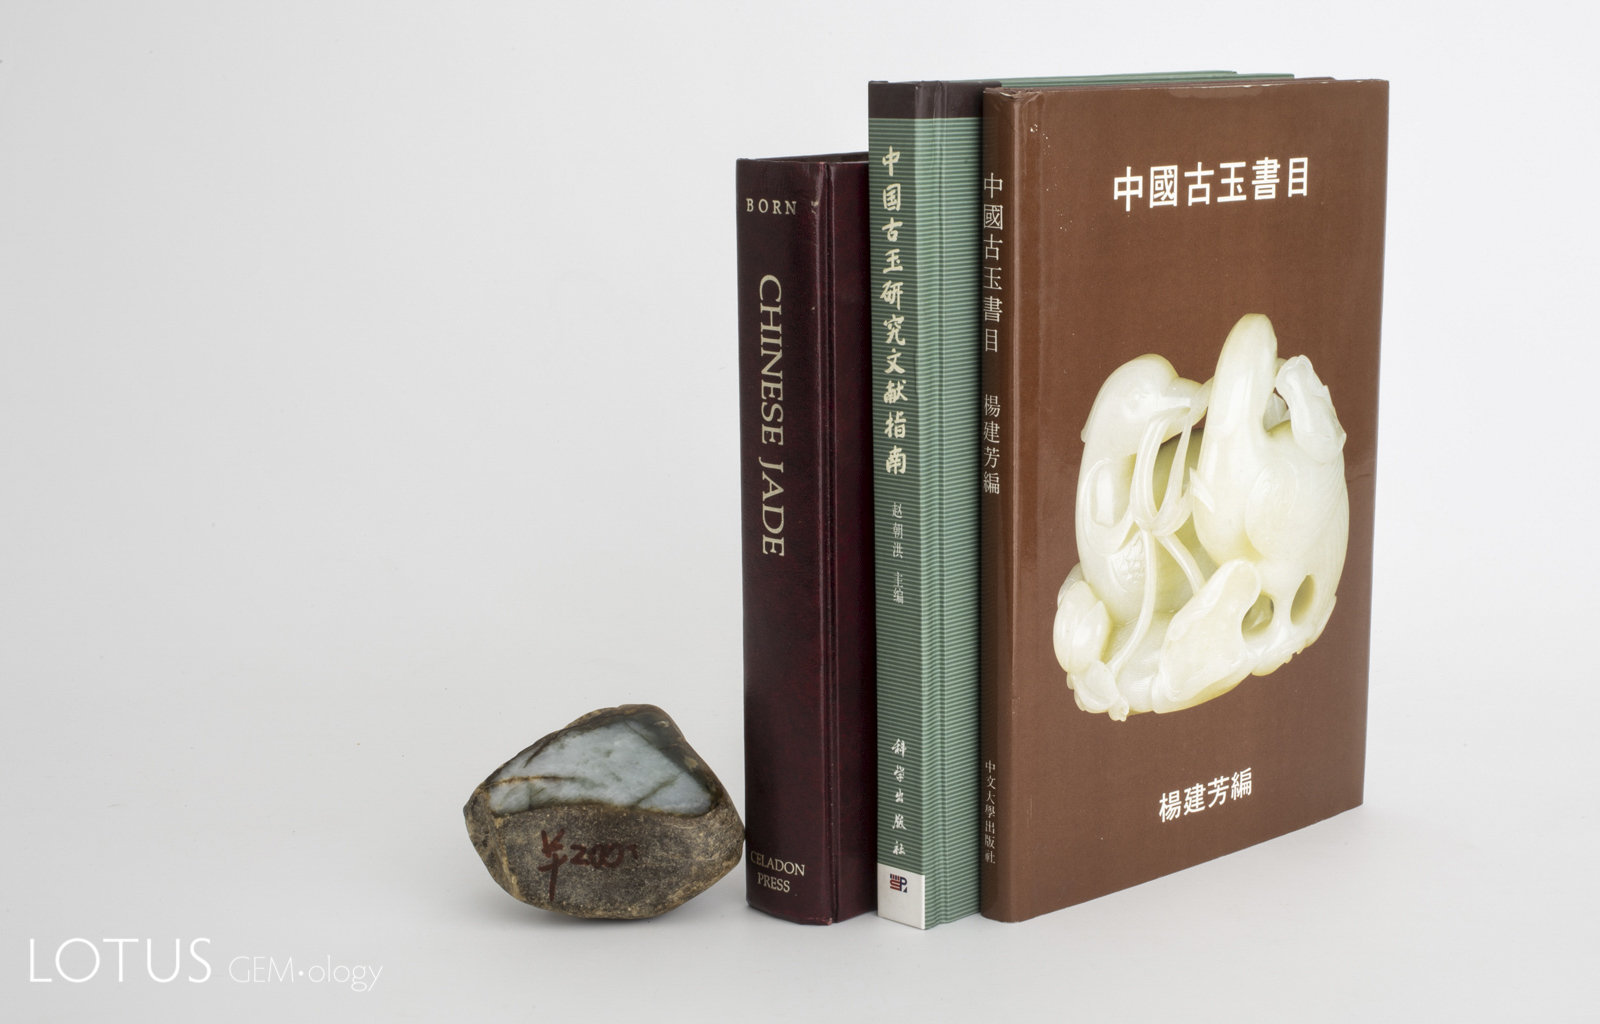 For the collector, bibliographies are essential references. From left to right: Born, Zhou and Yang. At left is a sliced piece of rough Burmese jadeite.